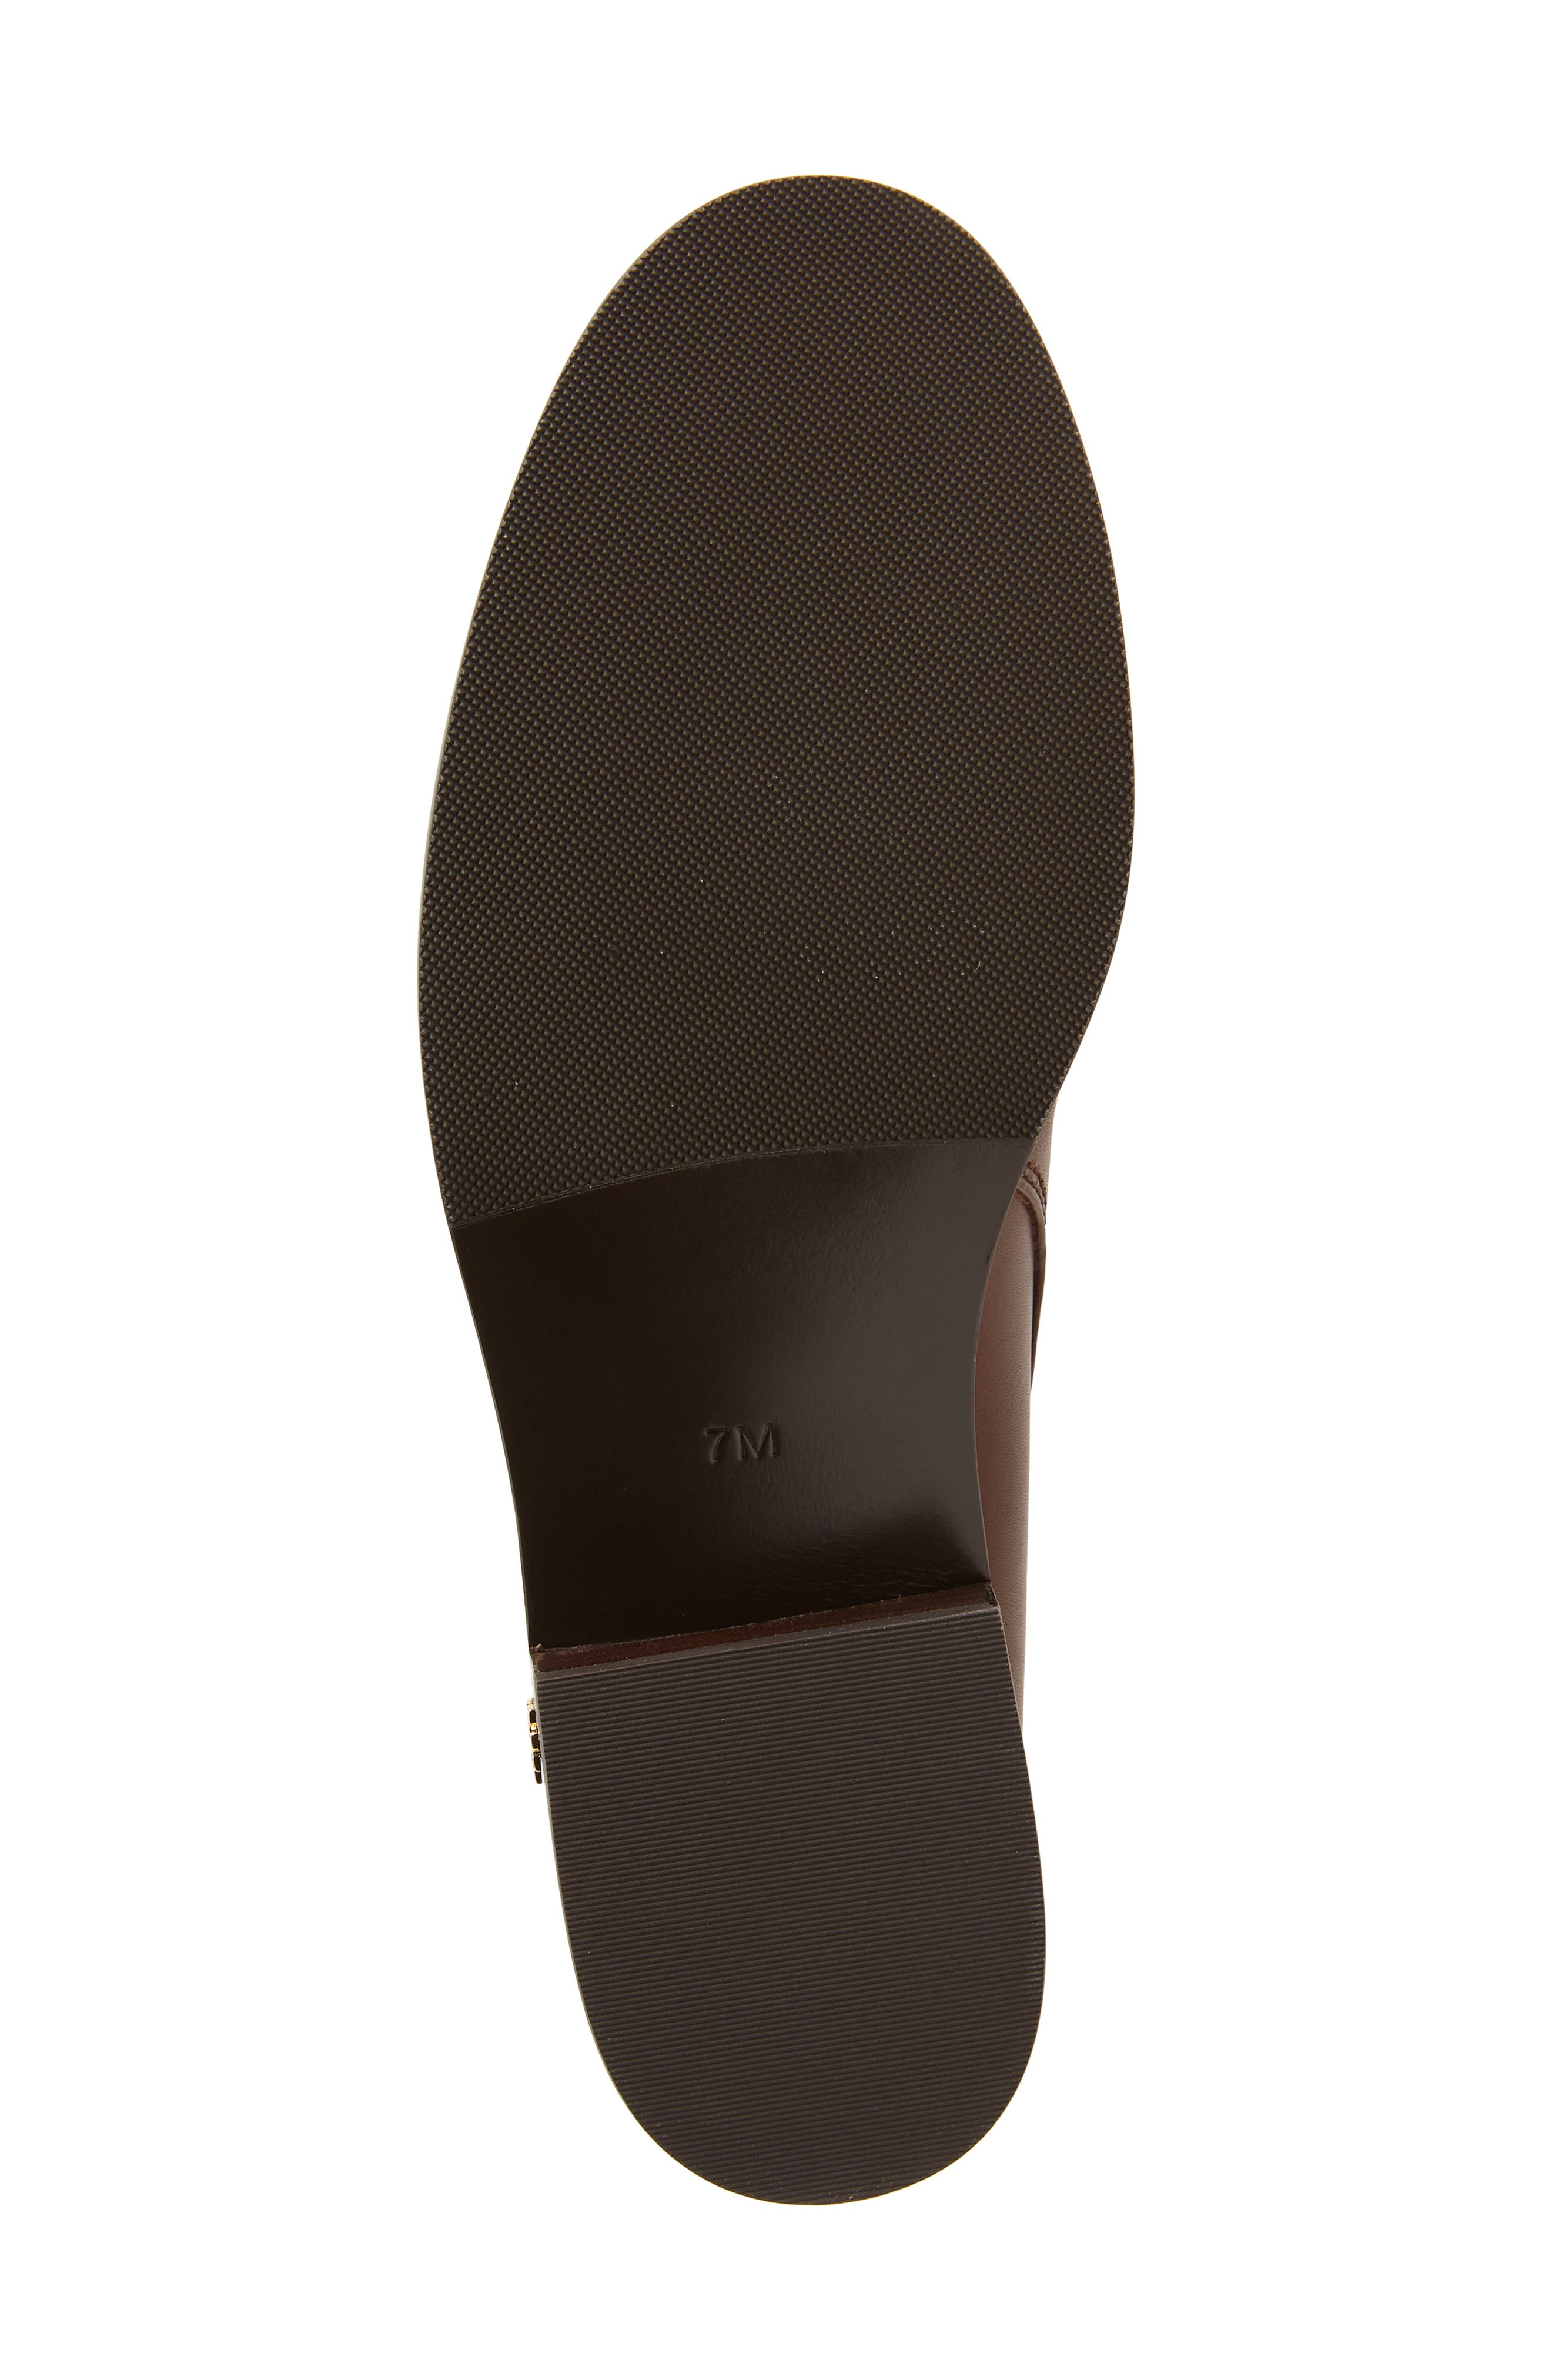 TORY BURCH, Brooke Bootie, Alternate thumbnail 6, color, 200